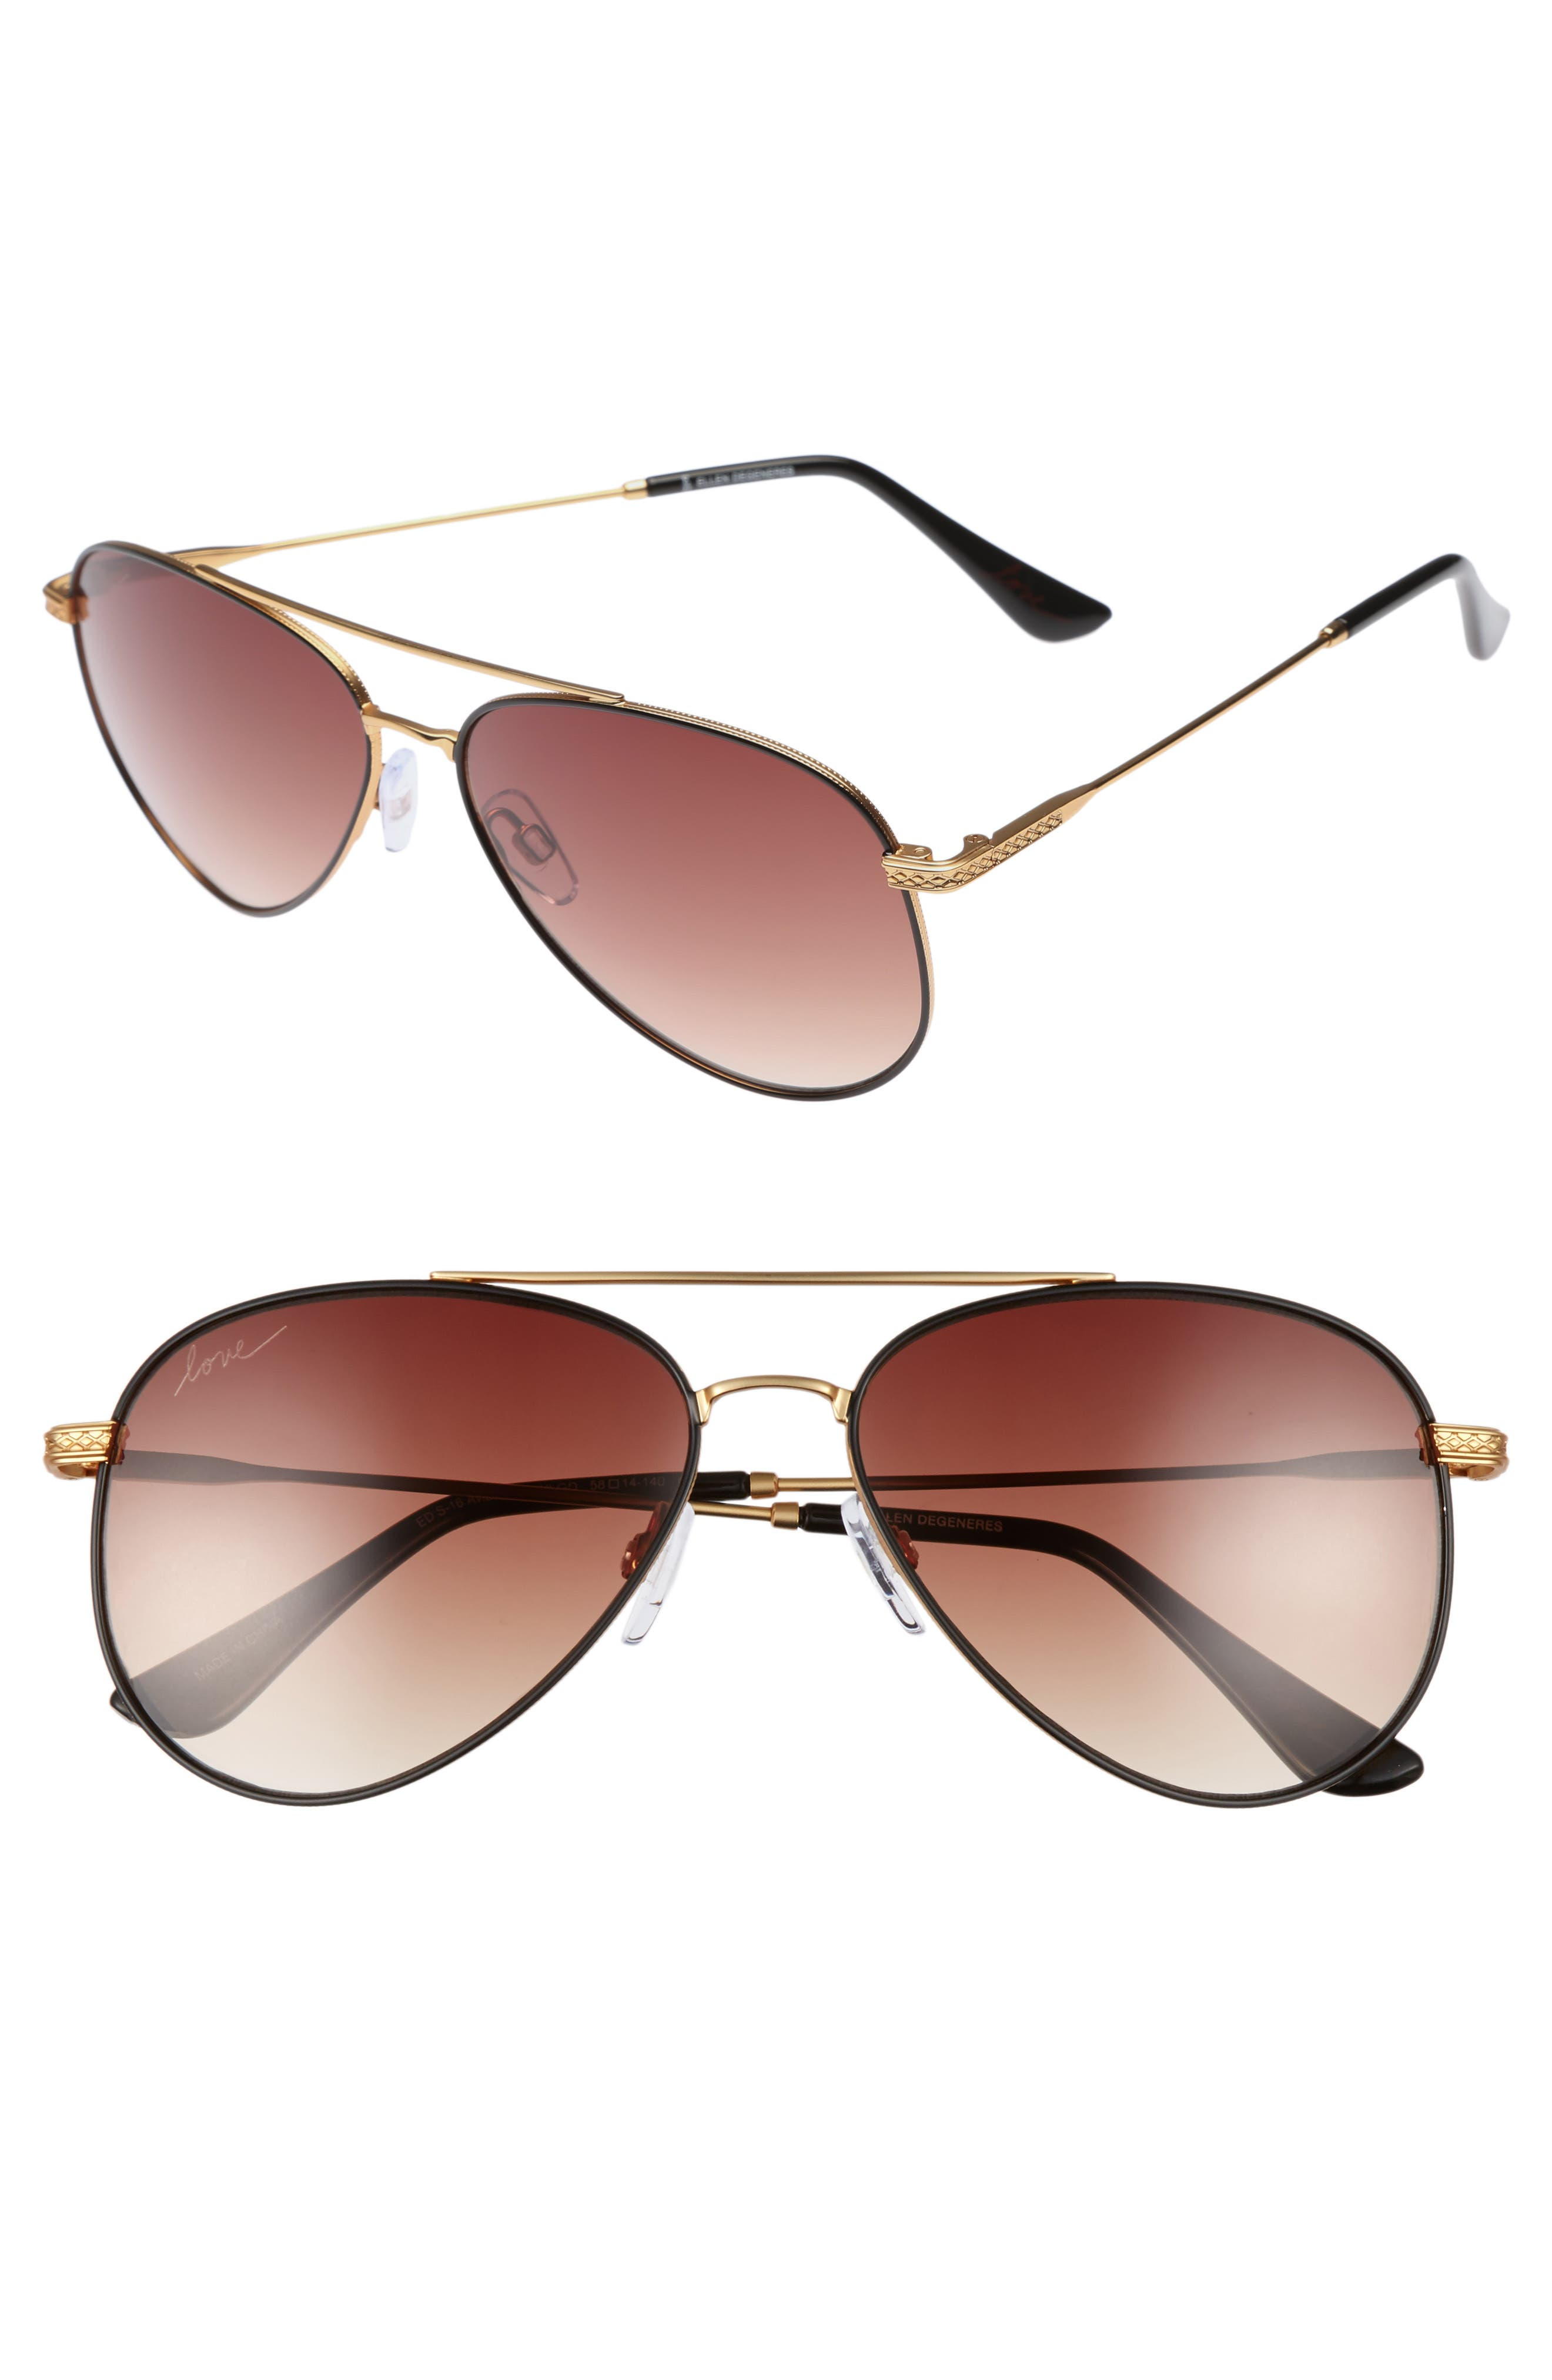 Main Image - ED Ellen DeGeneres 58mm Aviator Sunglasses